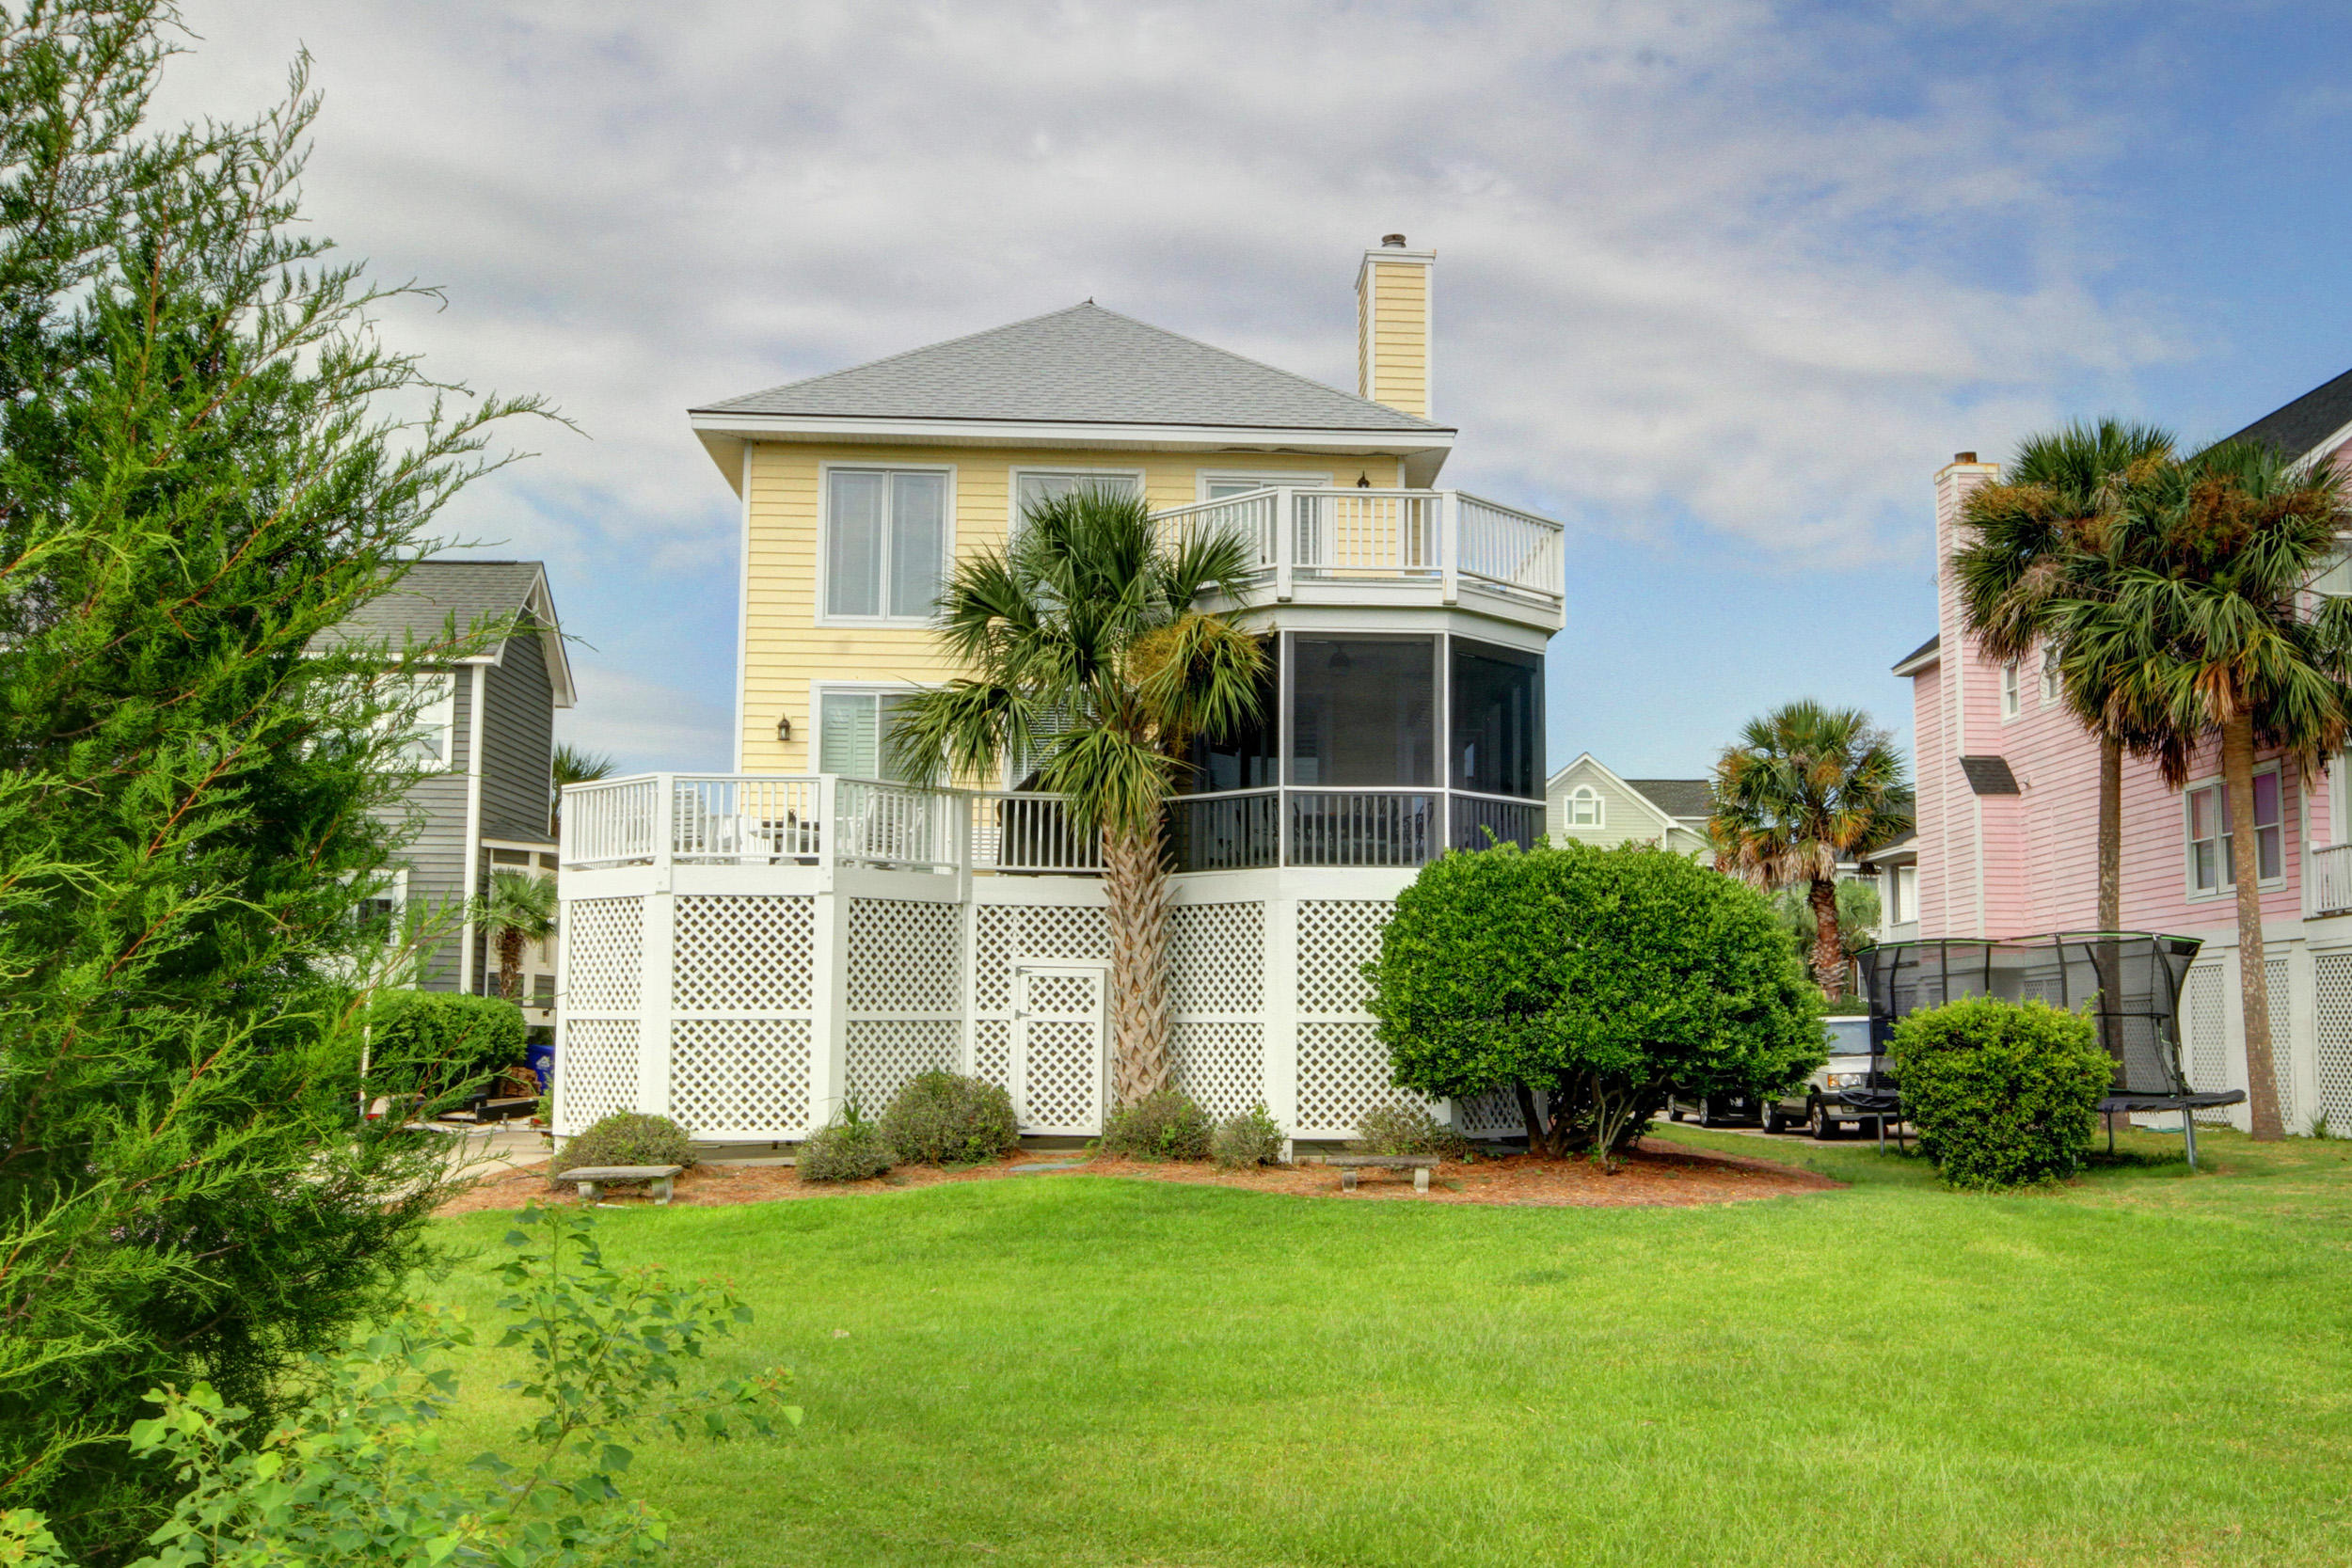 Wild Dunes Homes For Sale - 2 Morgan Pl, Isle of Palms, SC - 5